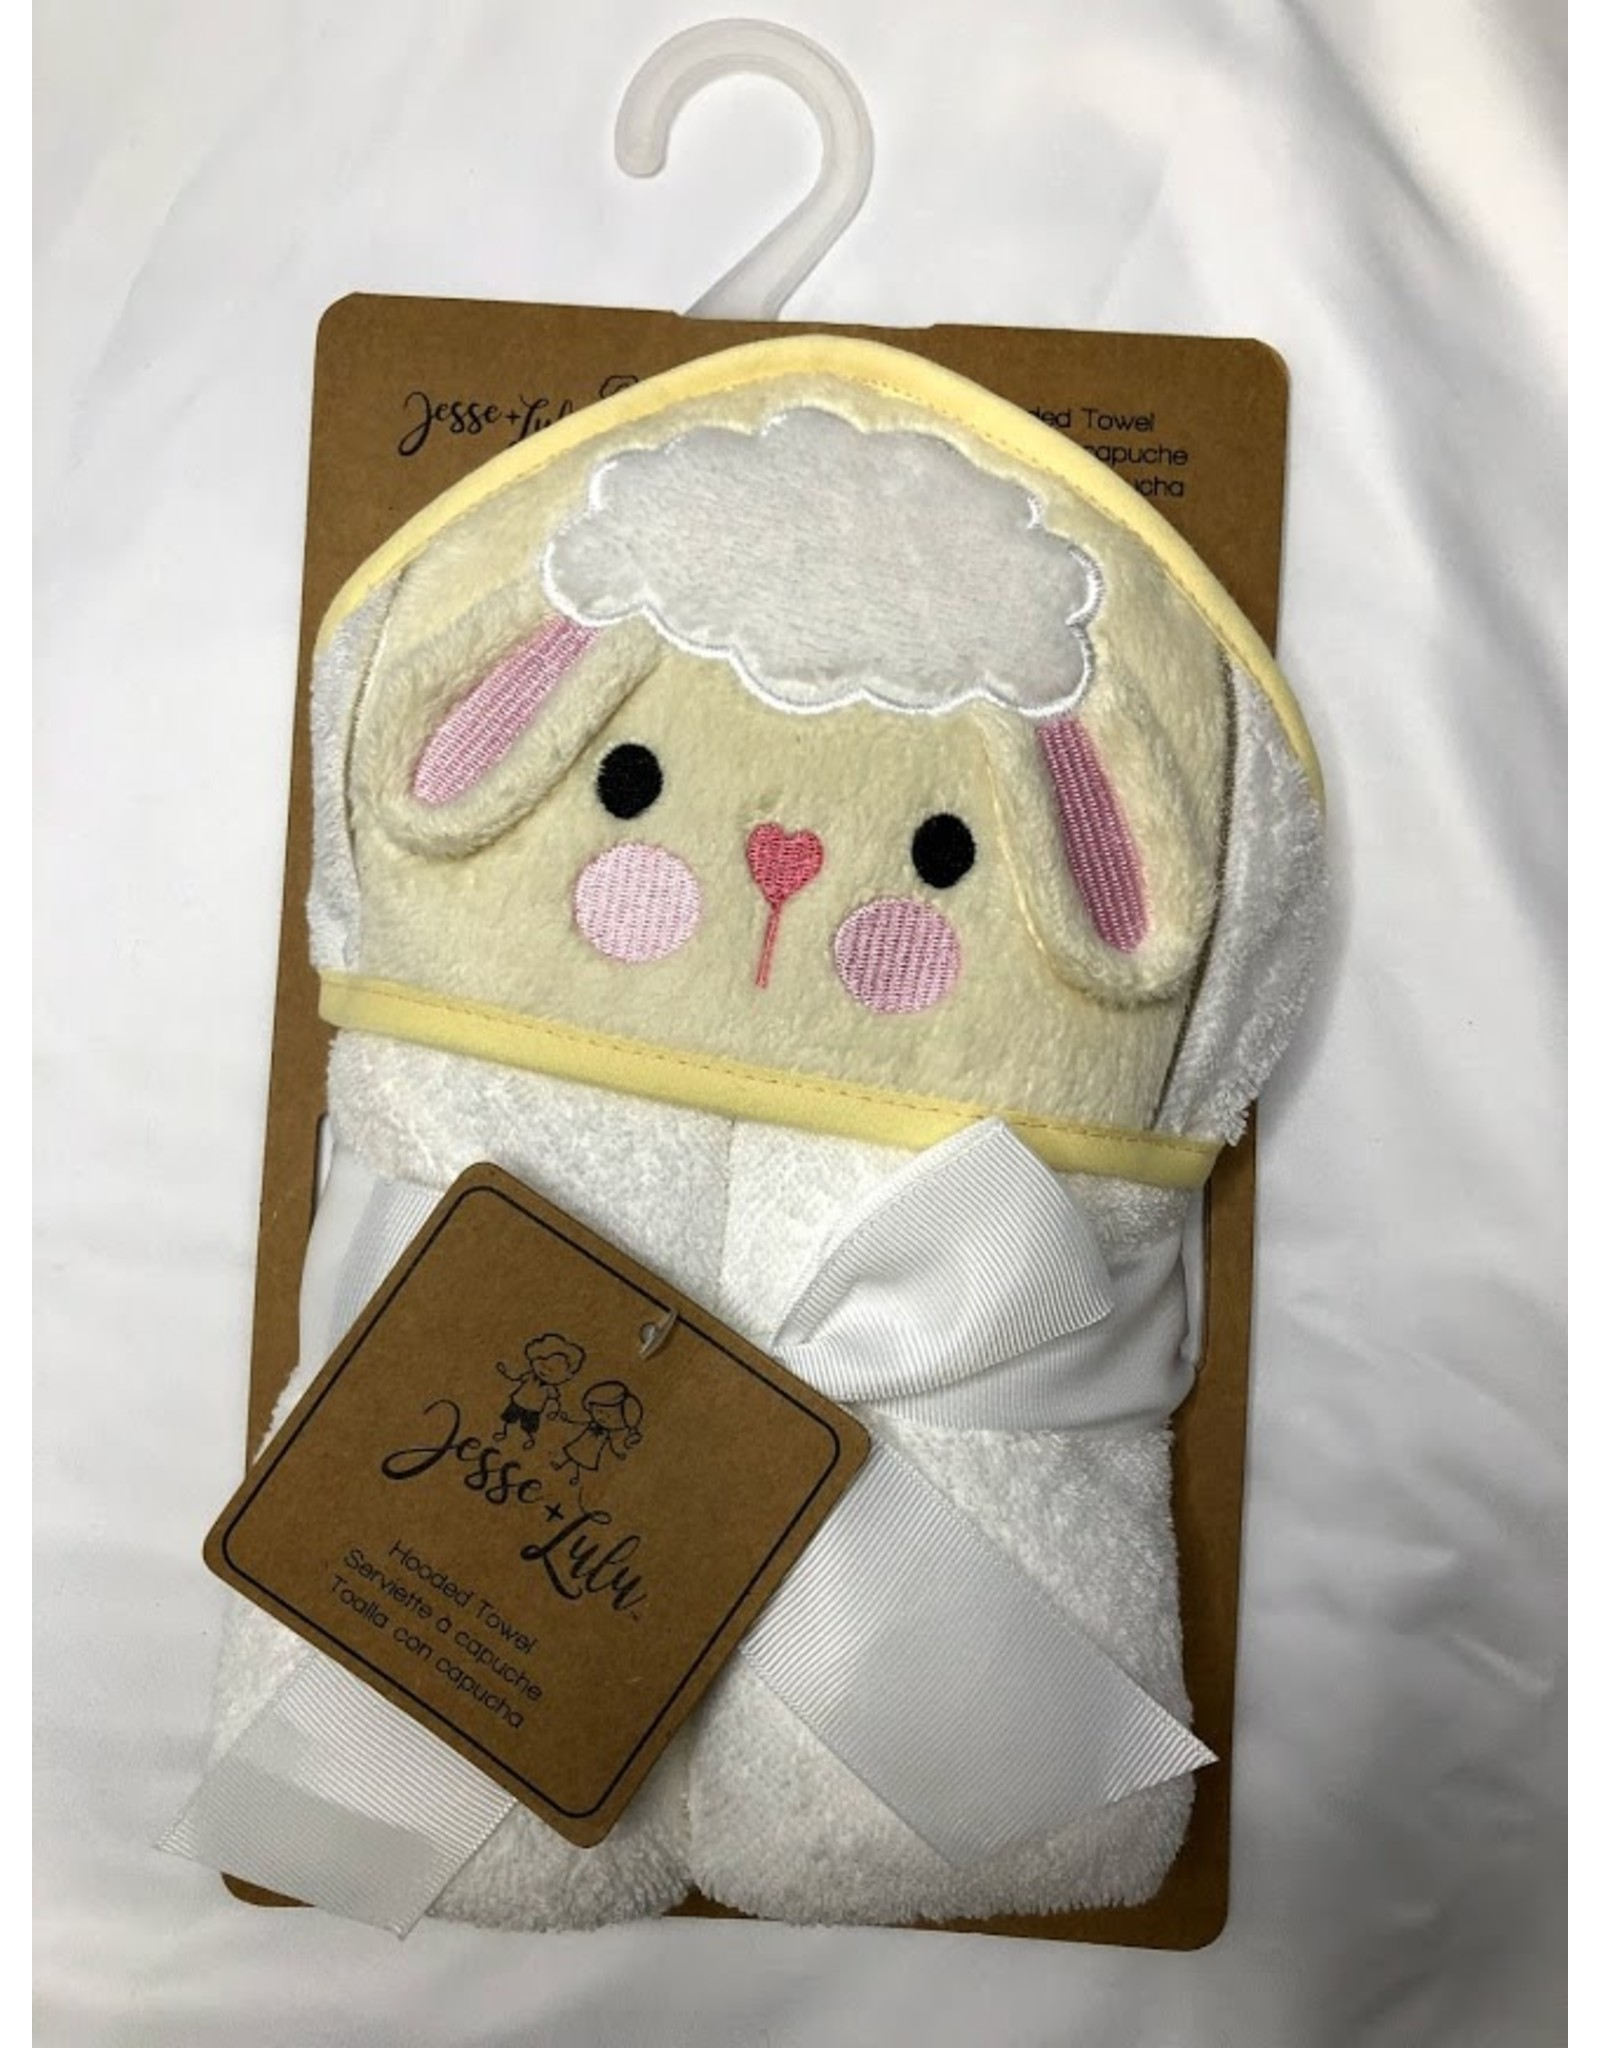 Rose Textiles Jesse-Lulu Animal Hooded Towel